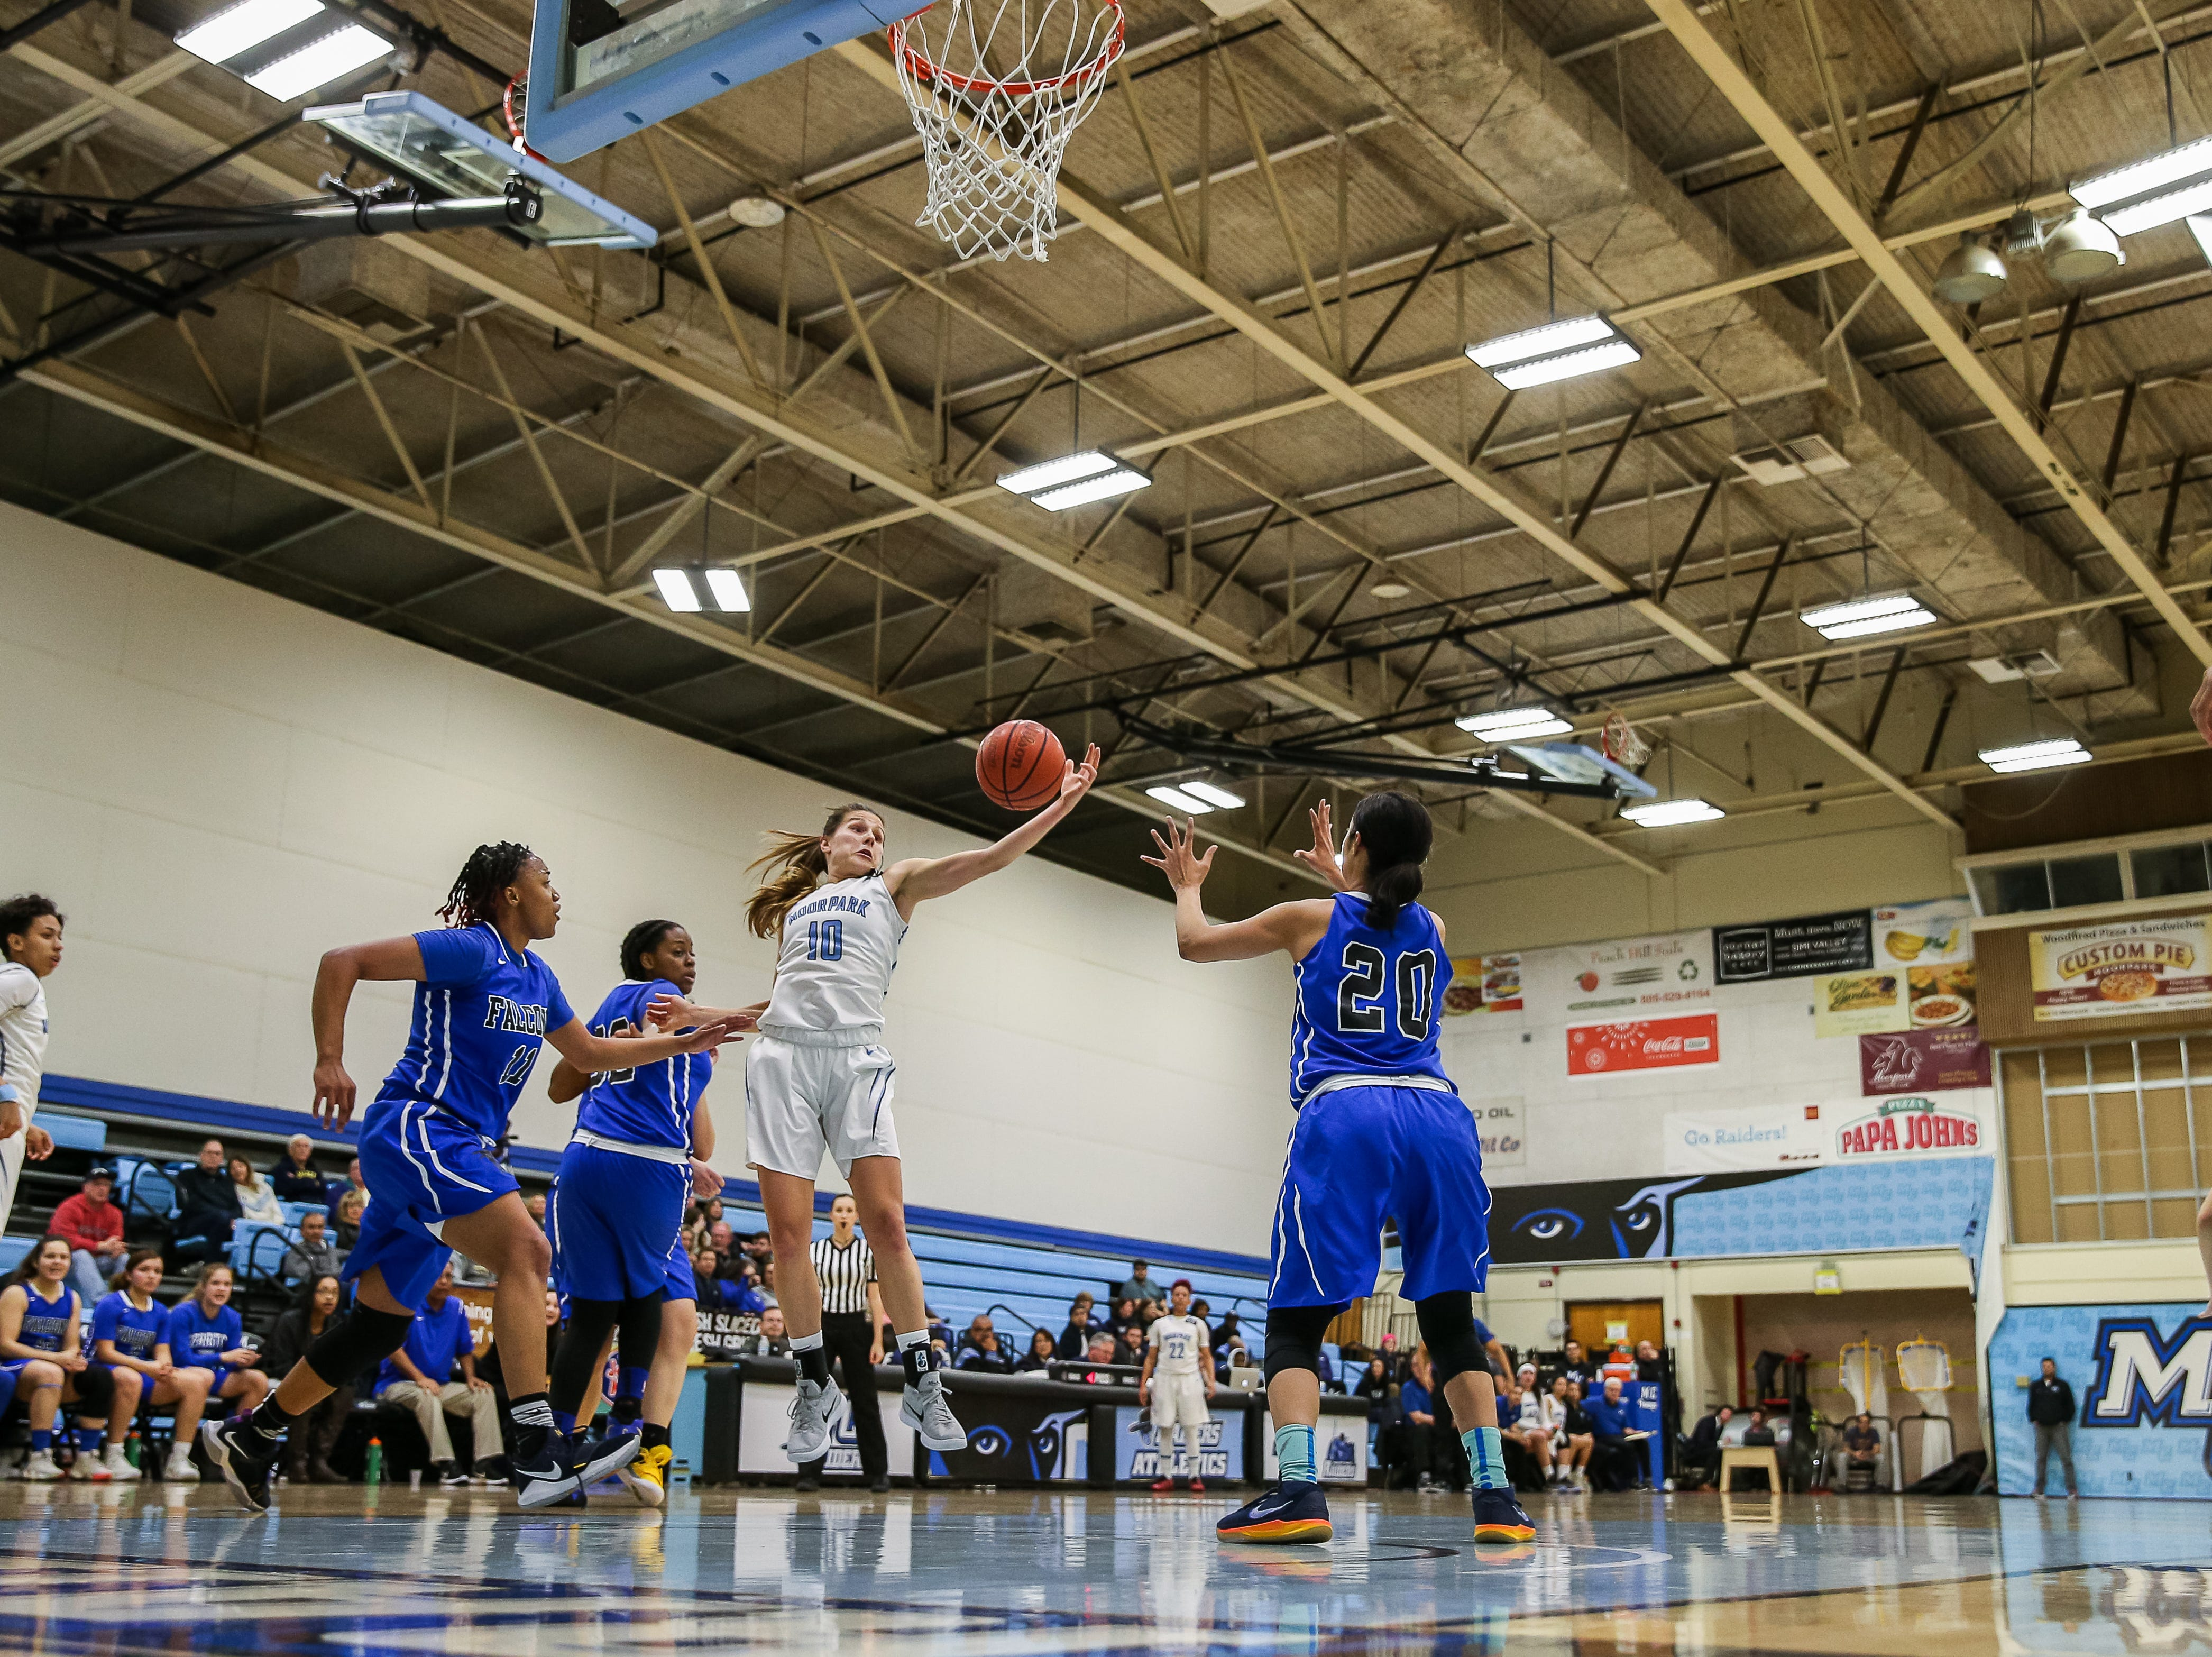 Moorpark College's Emily Herring attempts to reel in an offensive rebound amid a triangle of Cerritos College defenders during the Raiders' 86-56 win in a Southern California regional semifinal game Saturday night at Moorpark College. Herring had 16 points and 10 rebounds.